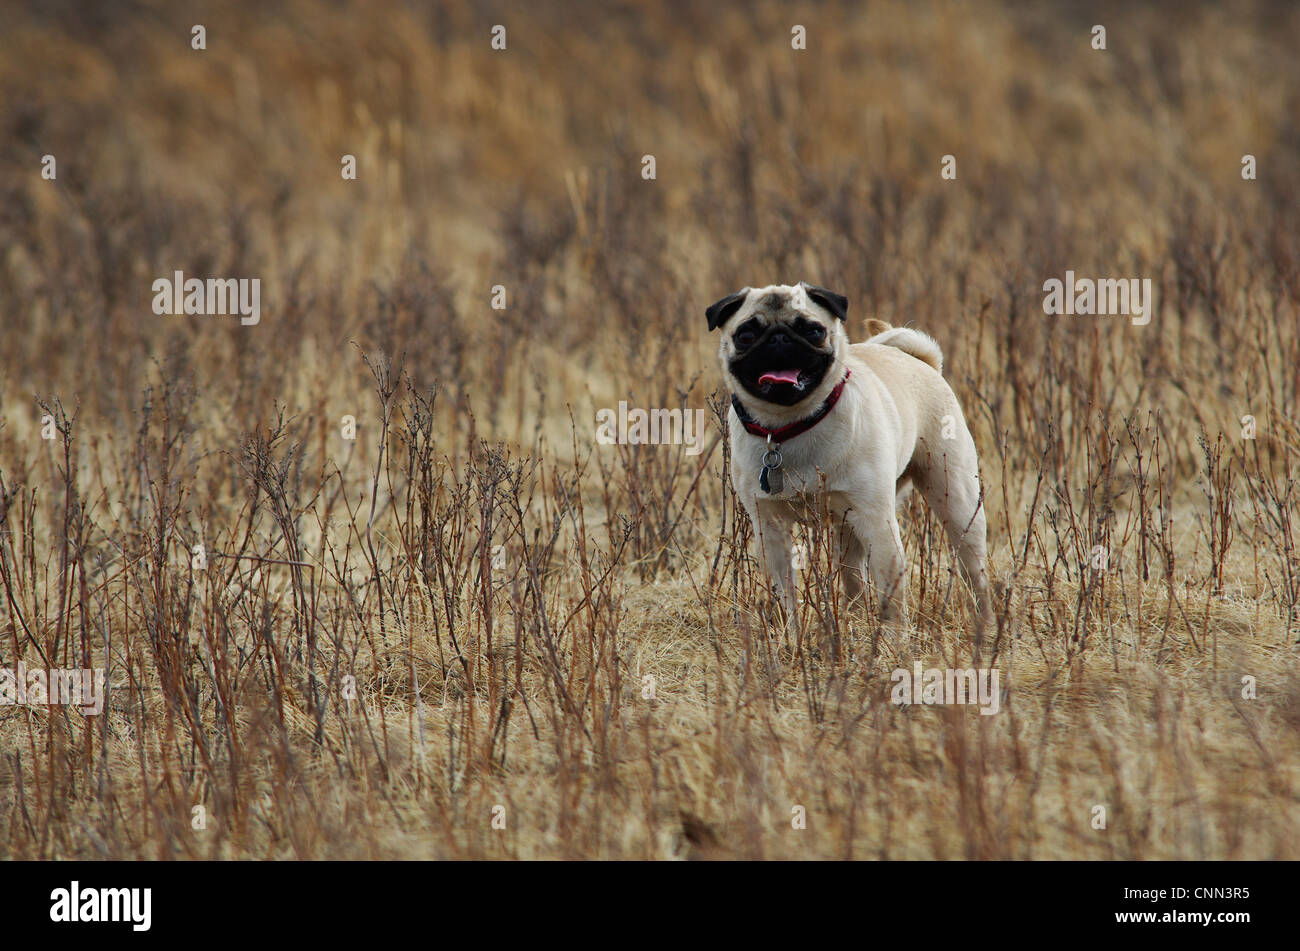 A fawn coloured pug dog in the weeds at the dog park. - Stock Image